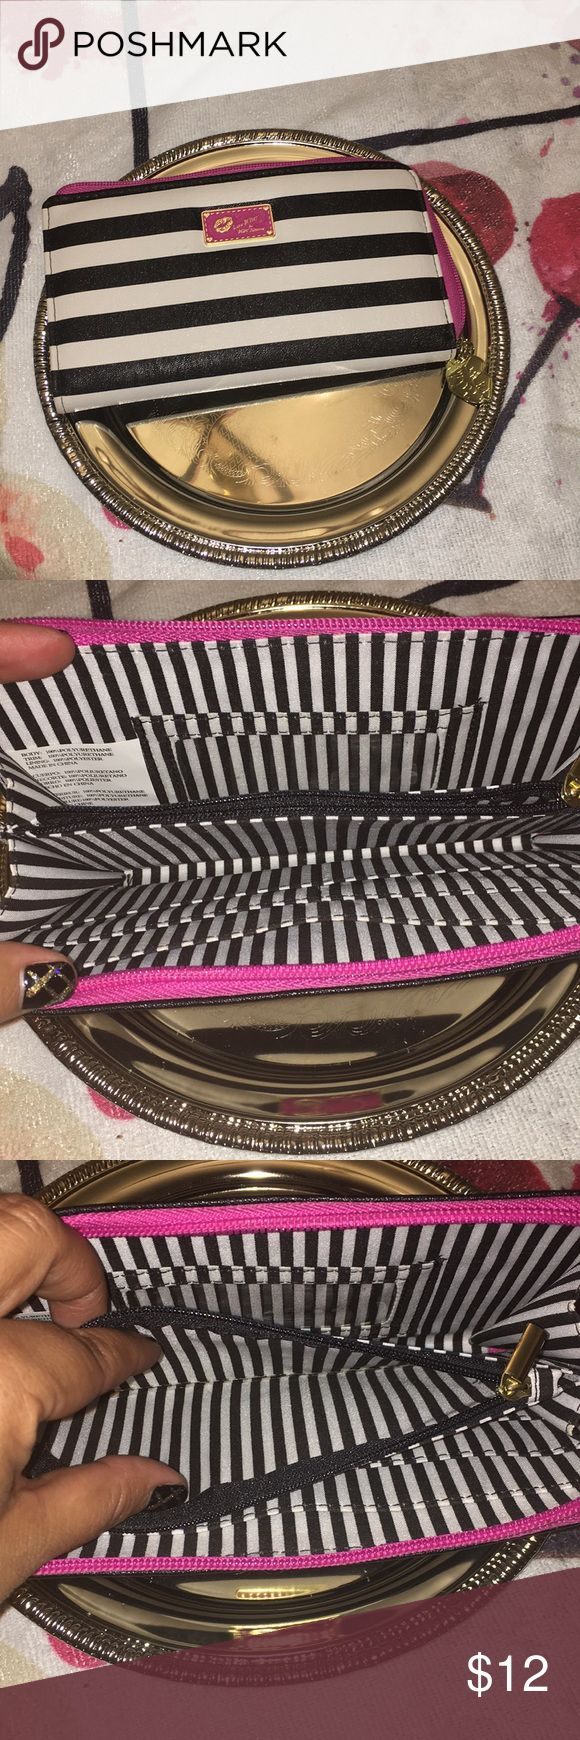 Betsey Johnson Zipper Wallet Fun and funky, black and white striped wallet with pink zipper and Betsey Johnson logo. Credit card slots, ID slot and inside zipper for coins. Perfect for any Betsey Johnson lover!   Thanks for looking! Let me know if you have any questions. Happy Shopping! 🛍 Betsey Johnson Accessories Key & Card Holders